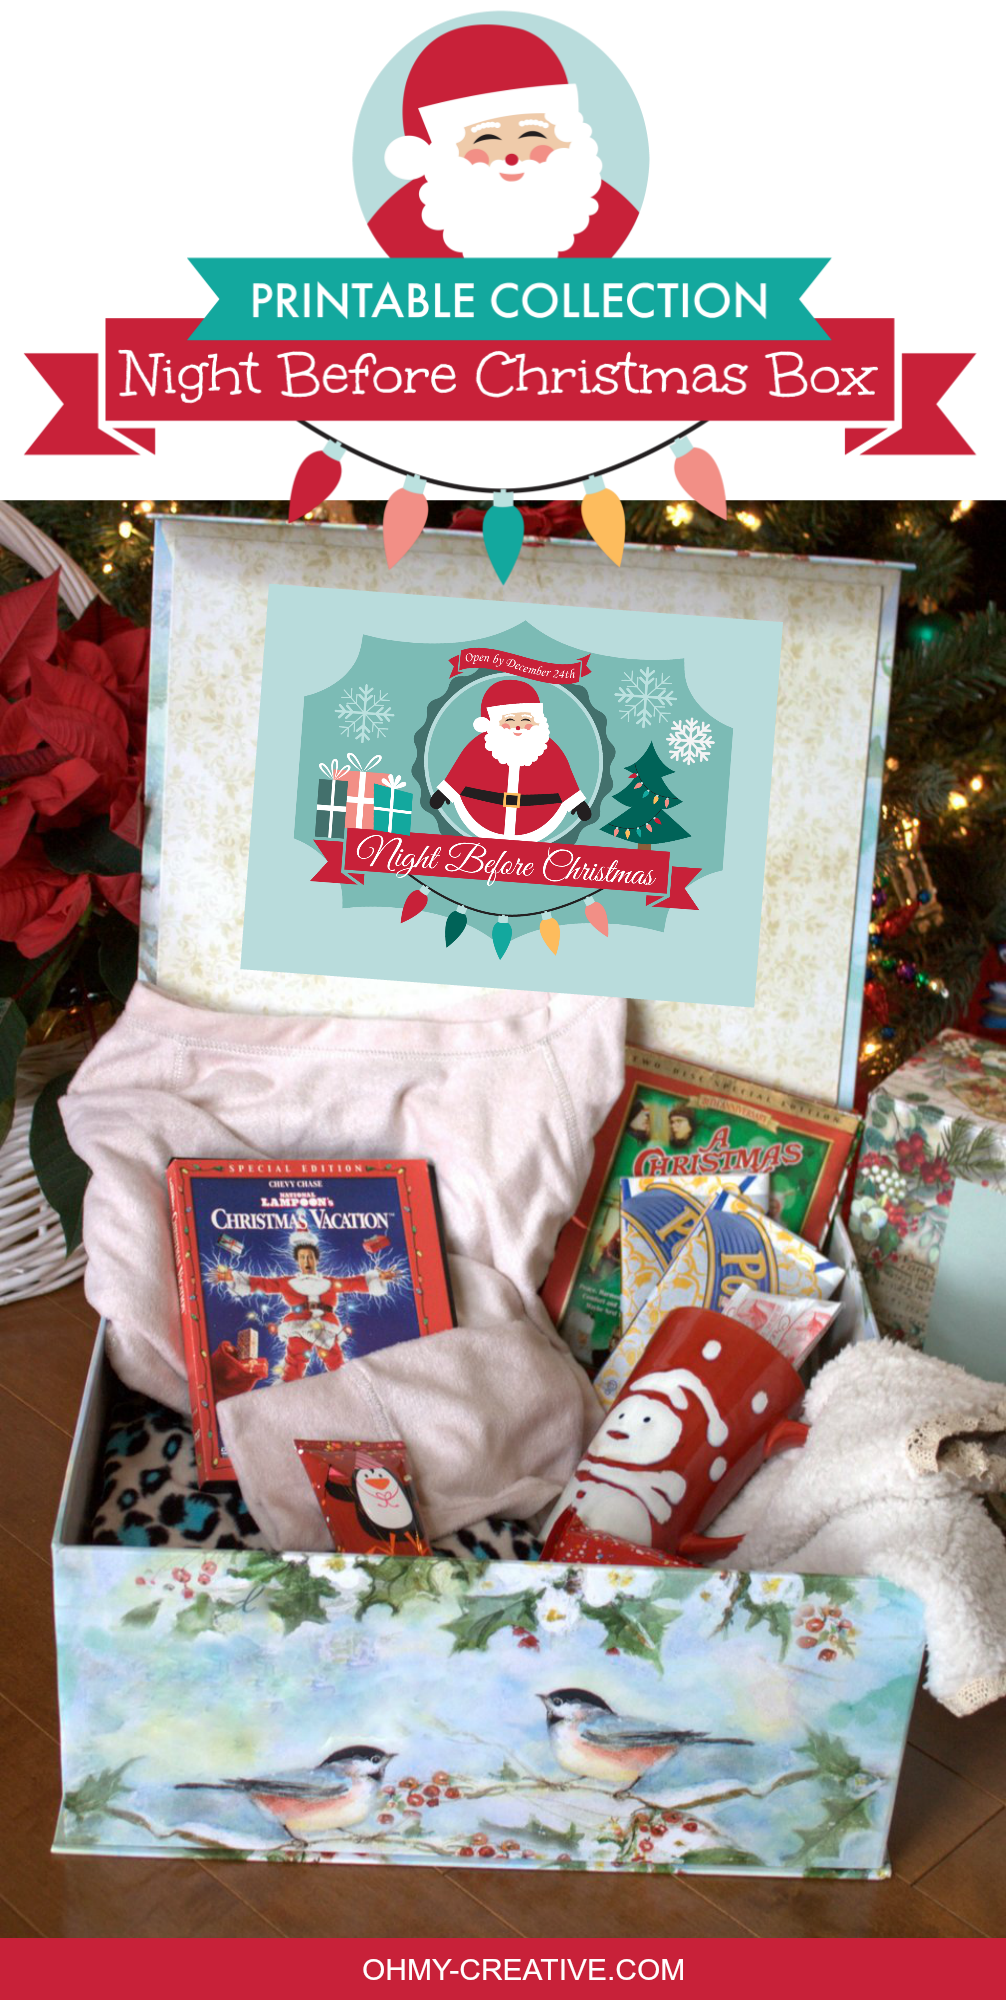 Night Before Christmas Box Printables - Oh My Creative